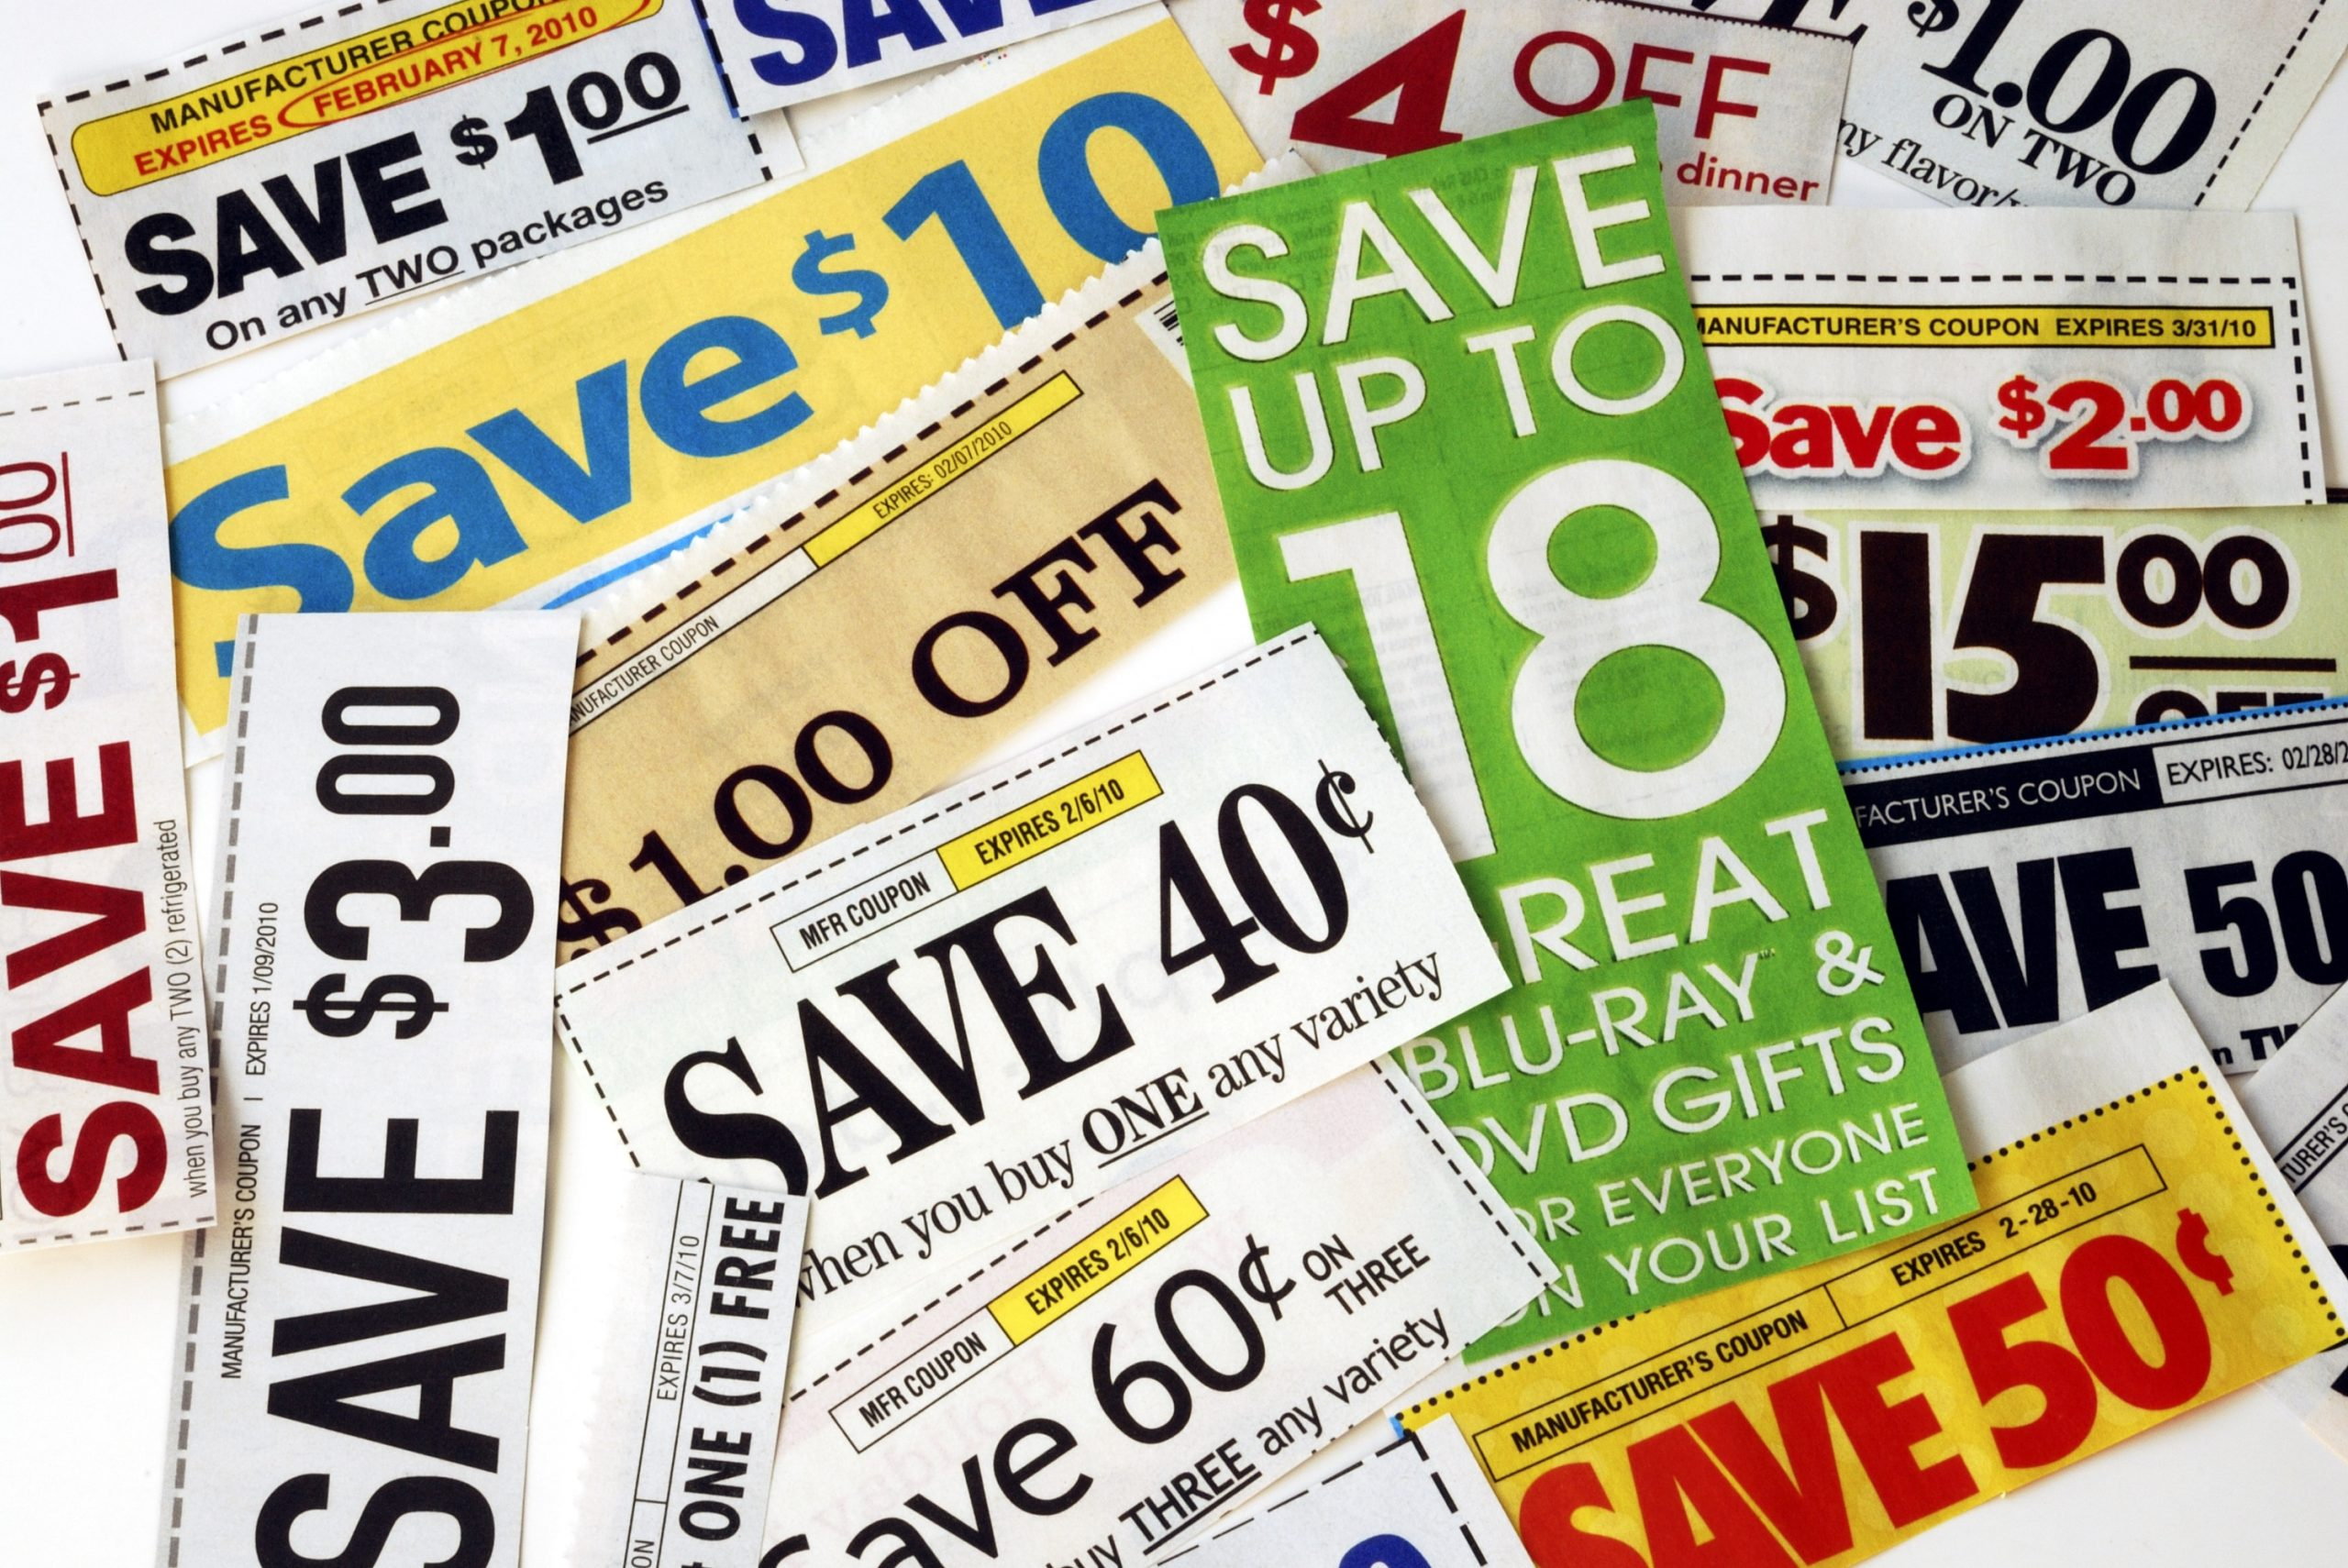 Sample Organized Coupons